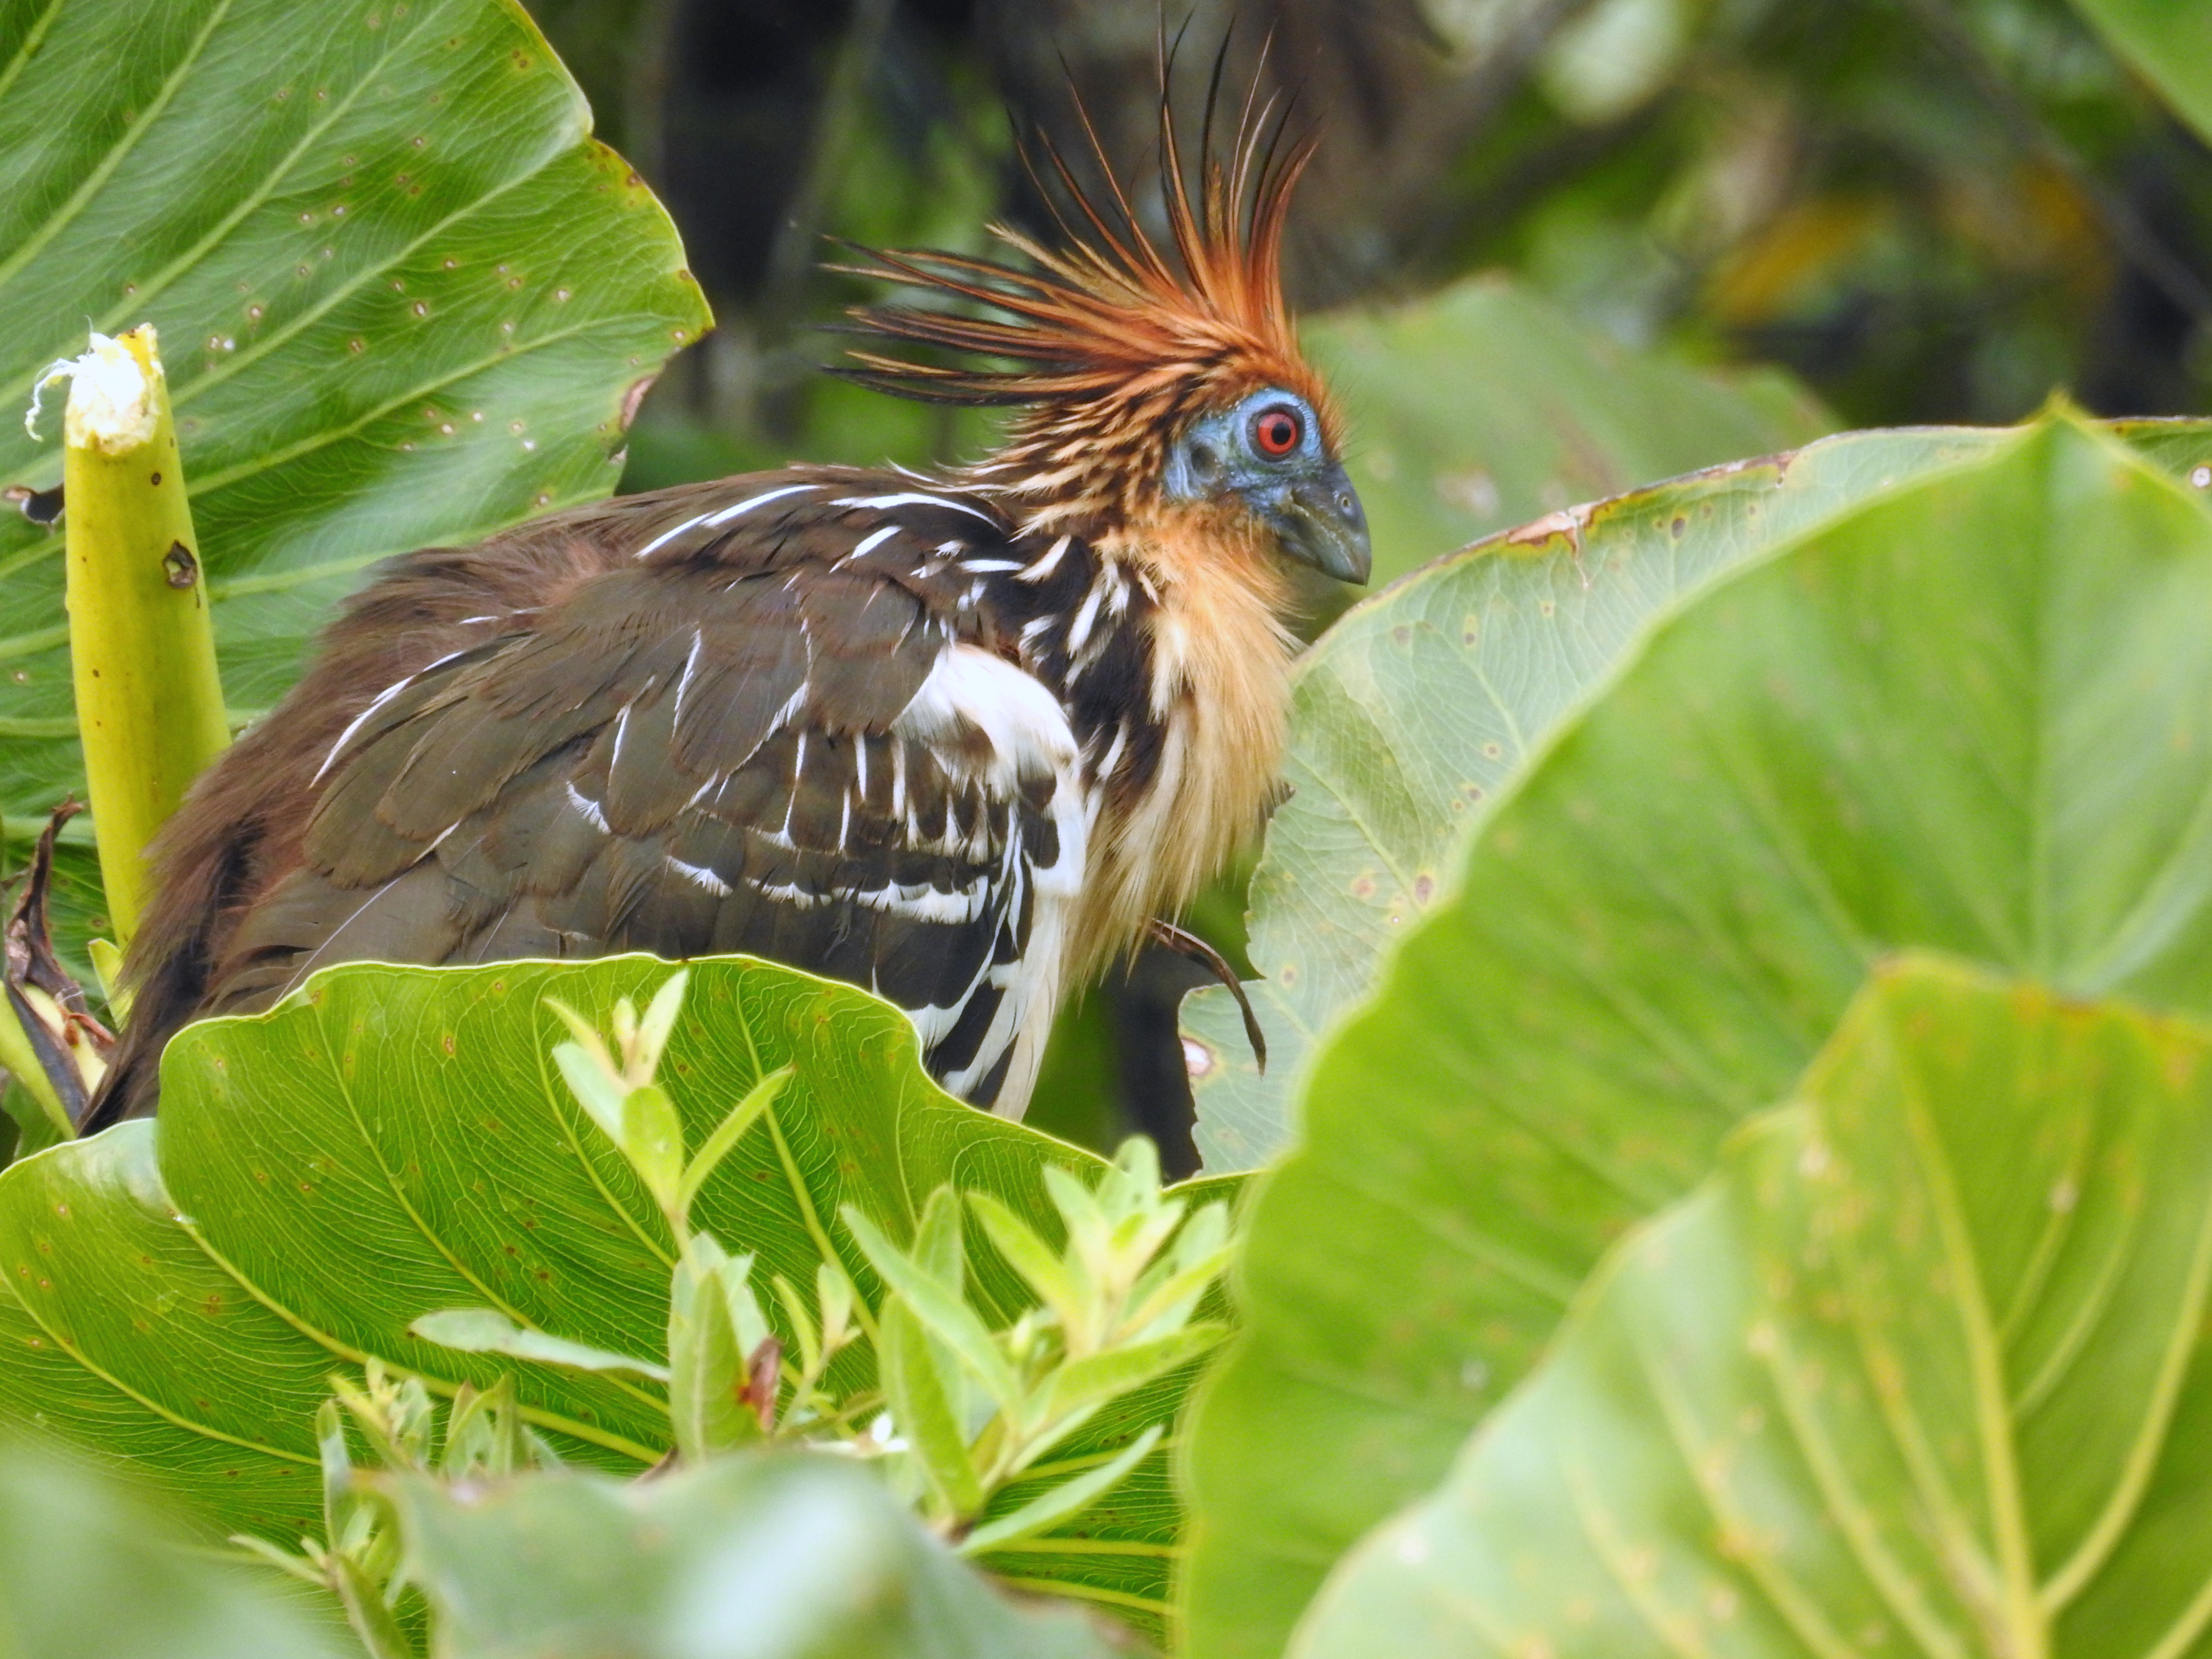 an unusual bird called a Hoatzin has an orange spiked mohawk, blue facial skin, red eyes, and a large chicken-like body